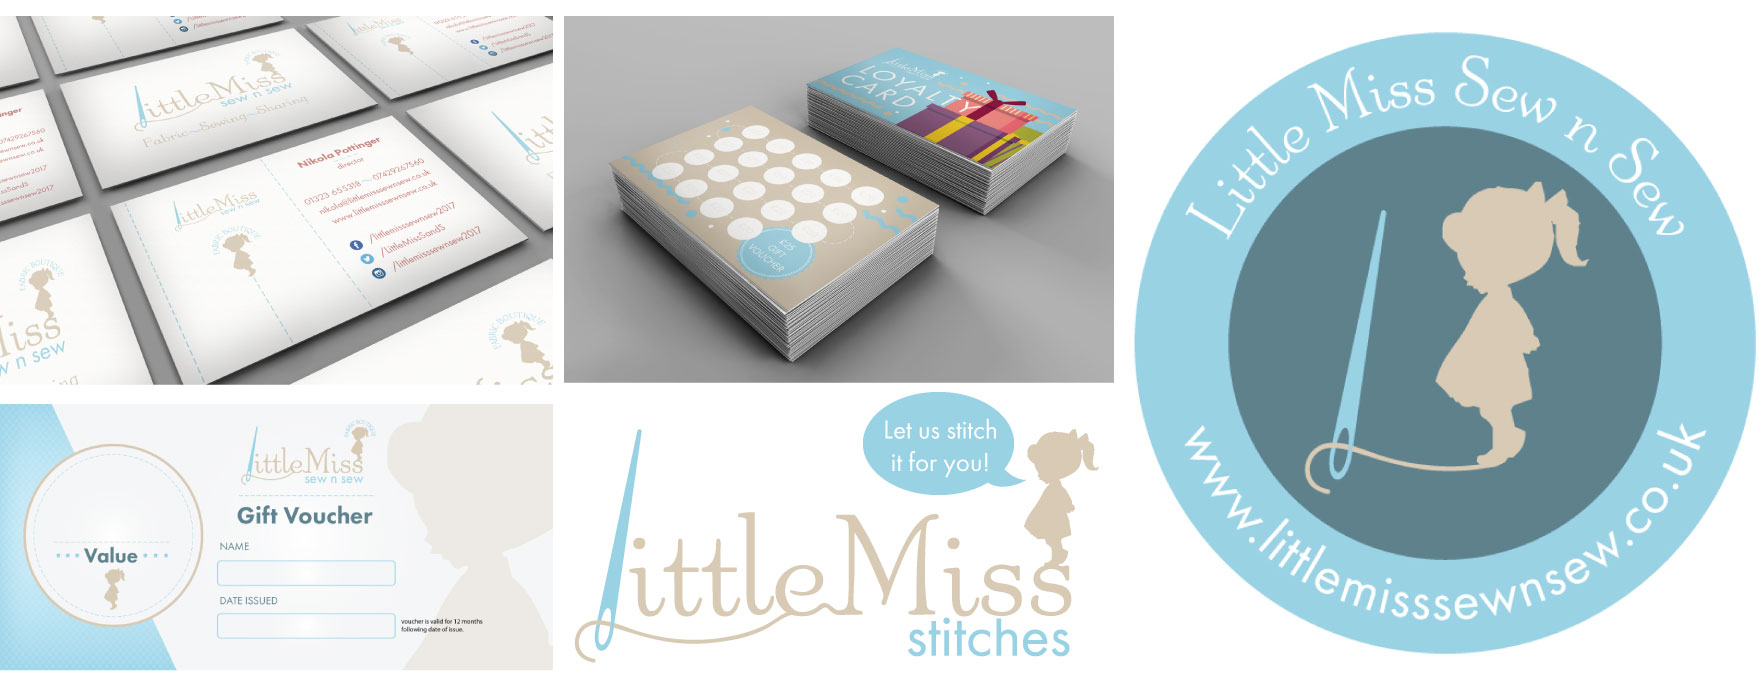 Little Miss Sew n Sew business cards and vouchers